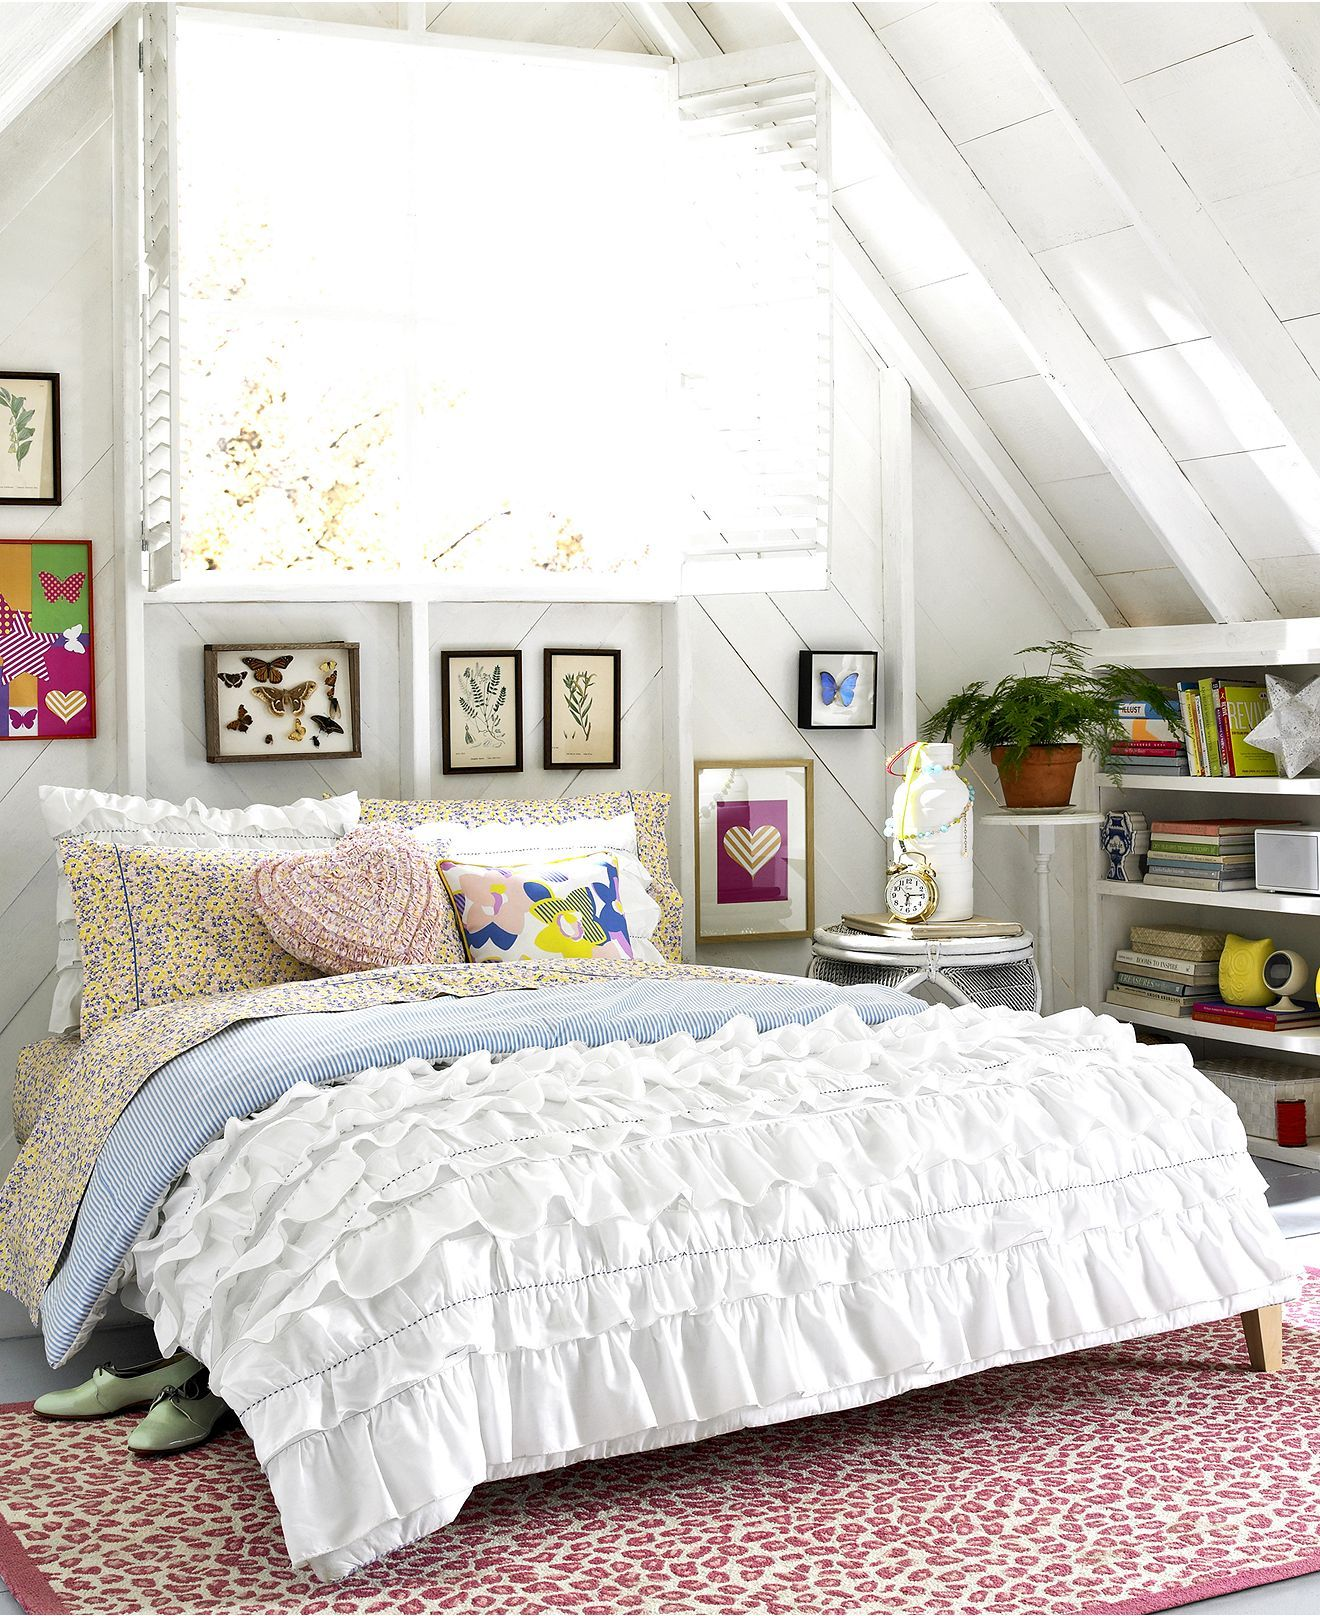 Pin on Bedspread Inspiration